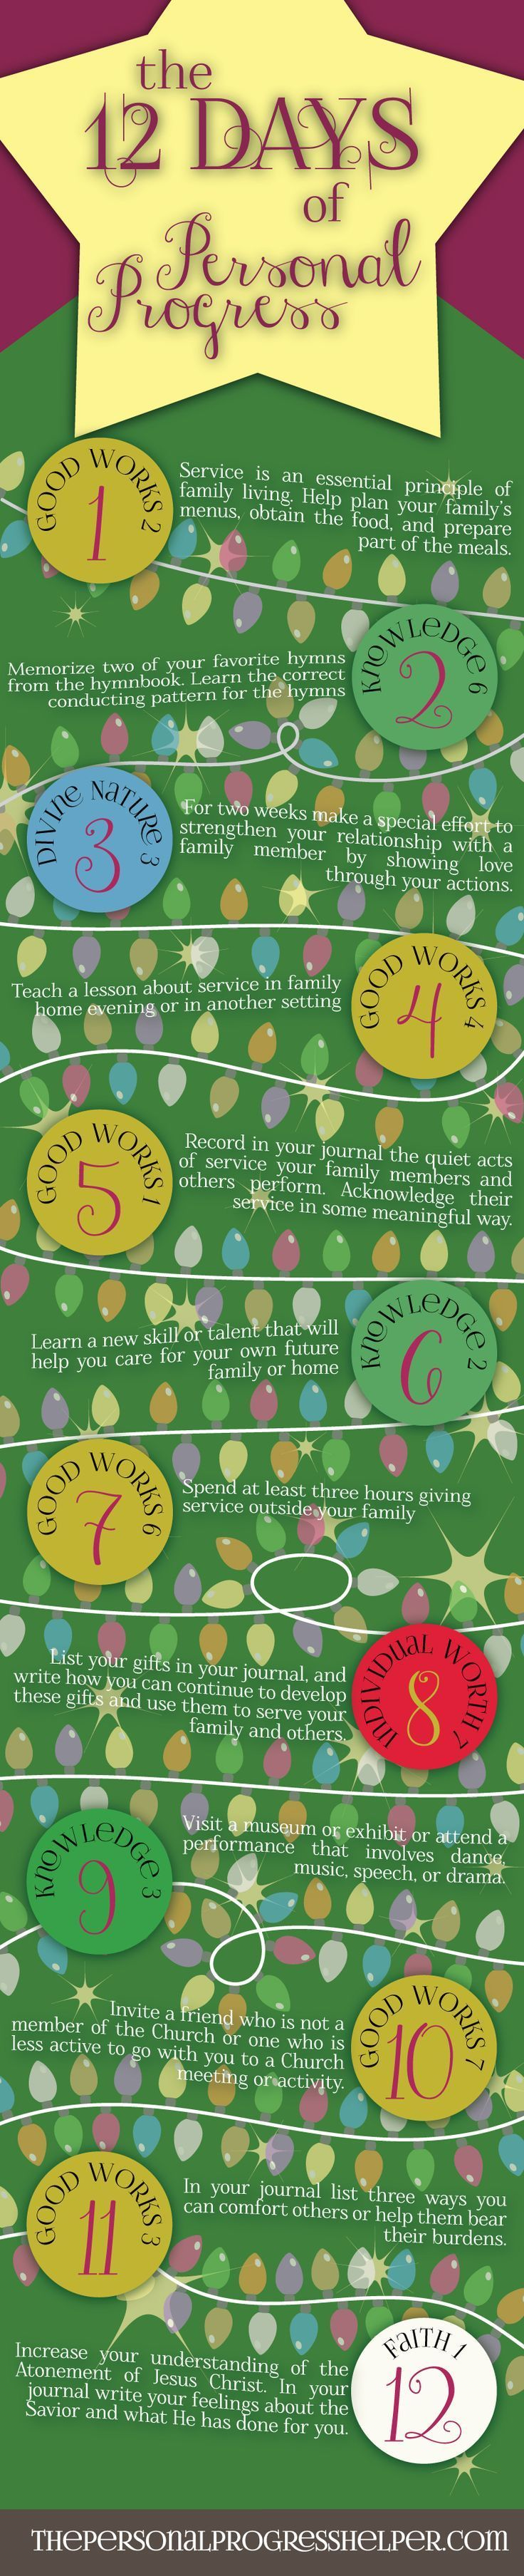 Rainbow Tea Program For Church Yahoo Answers - 12 days of personal progress infographic just in time for the holidays